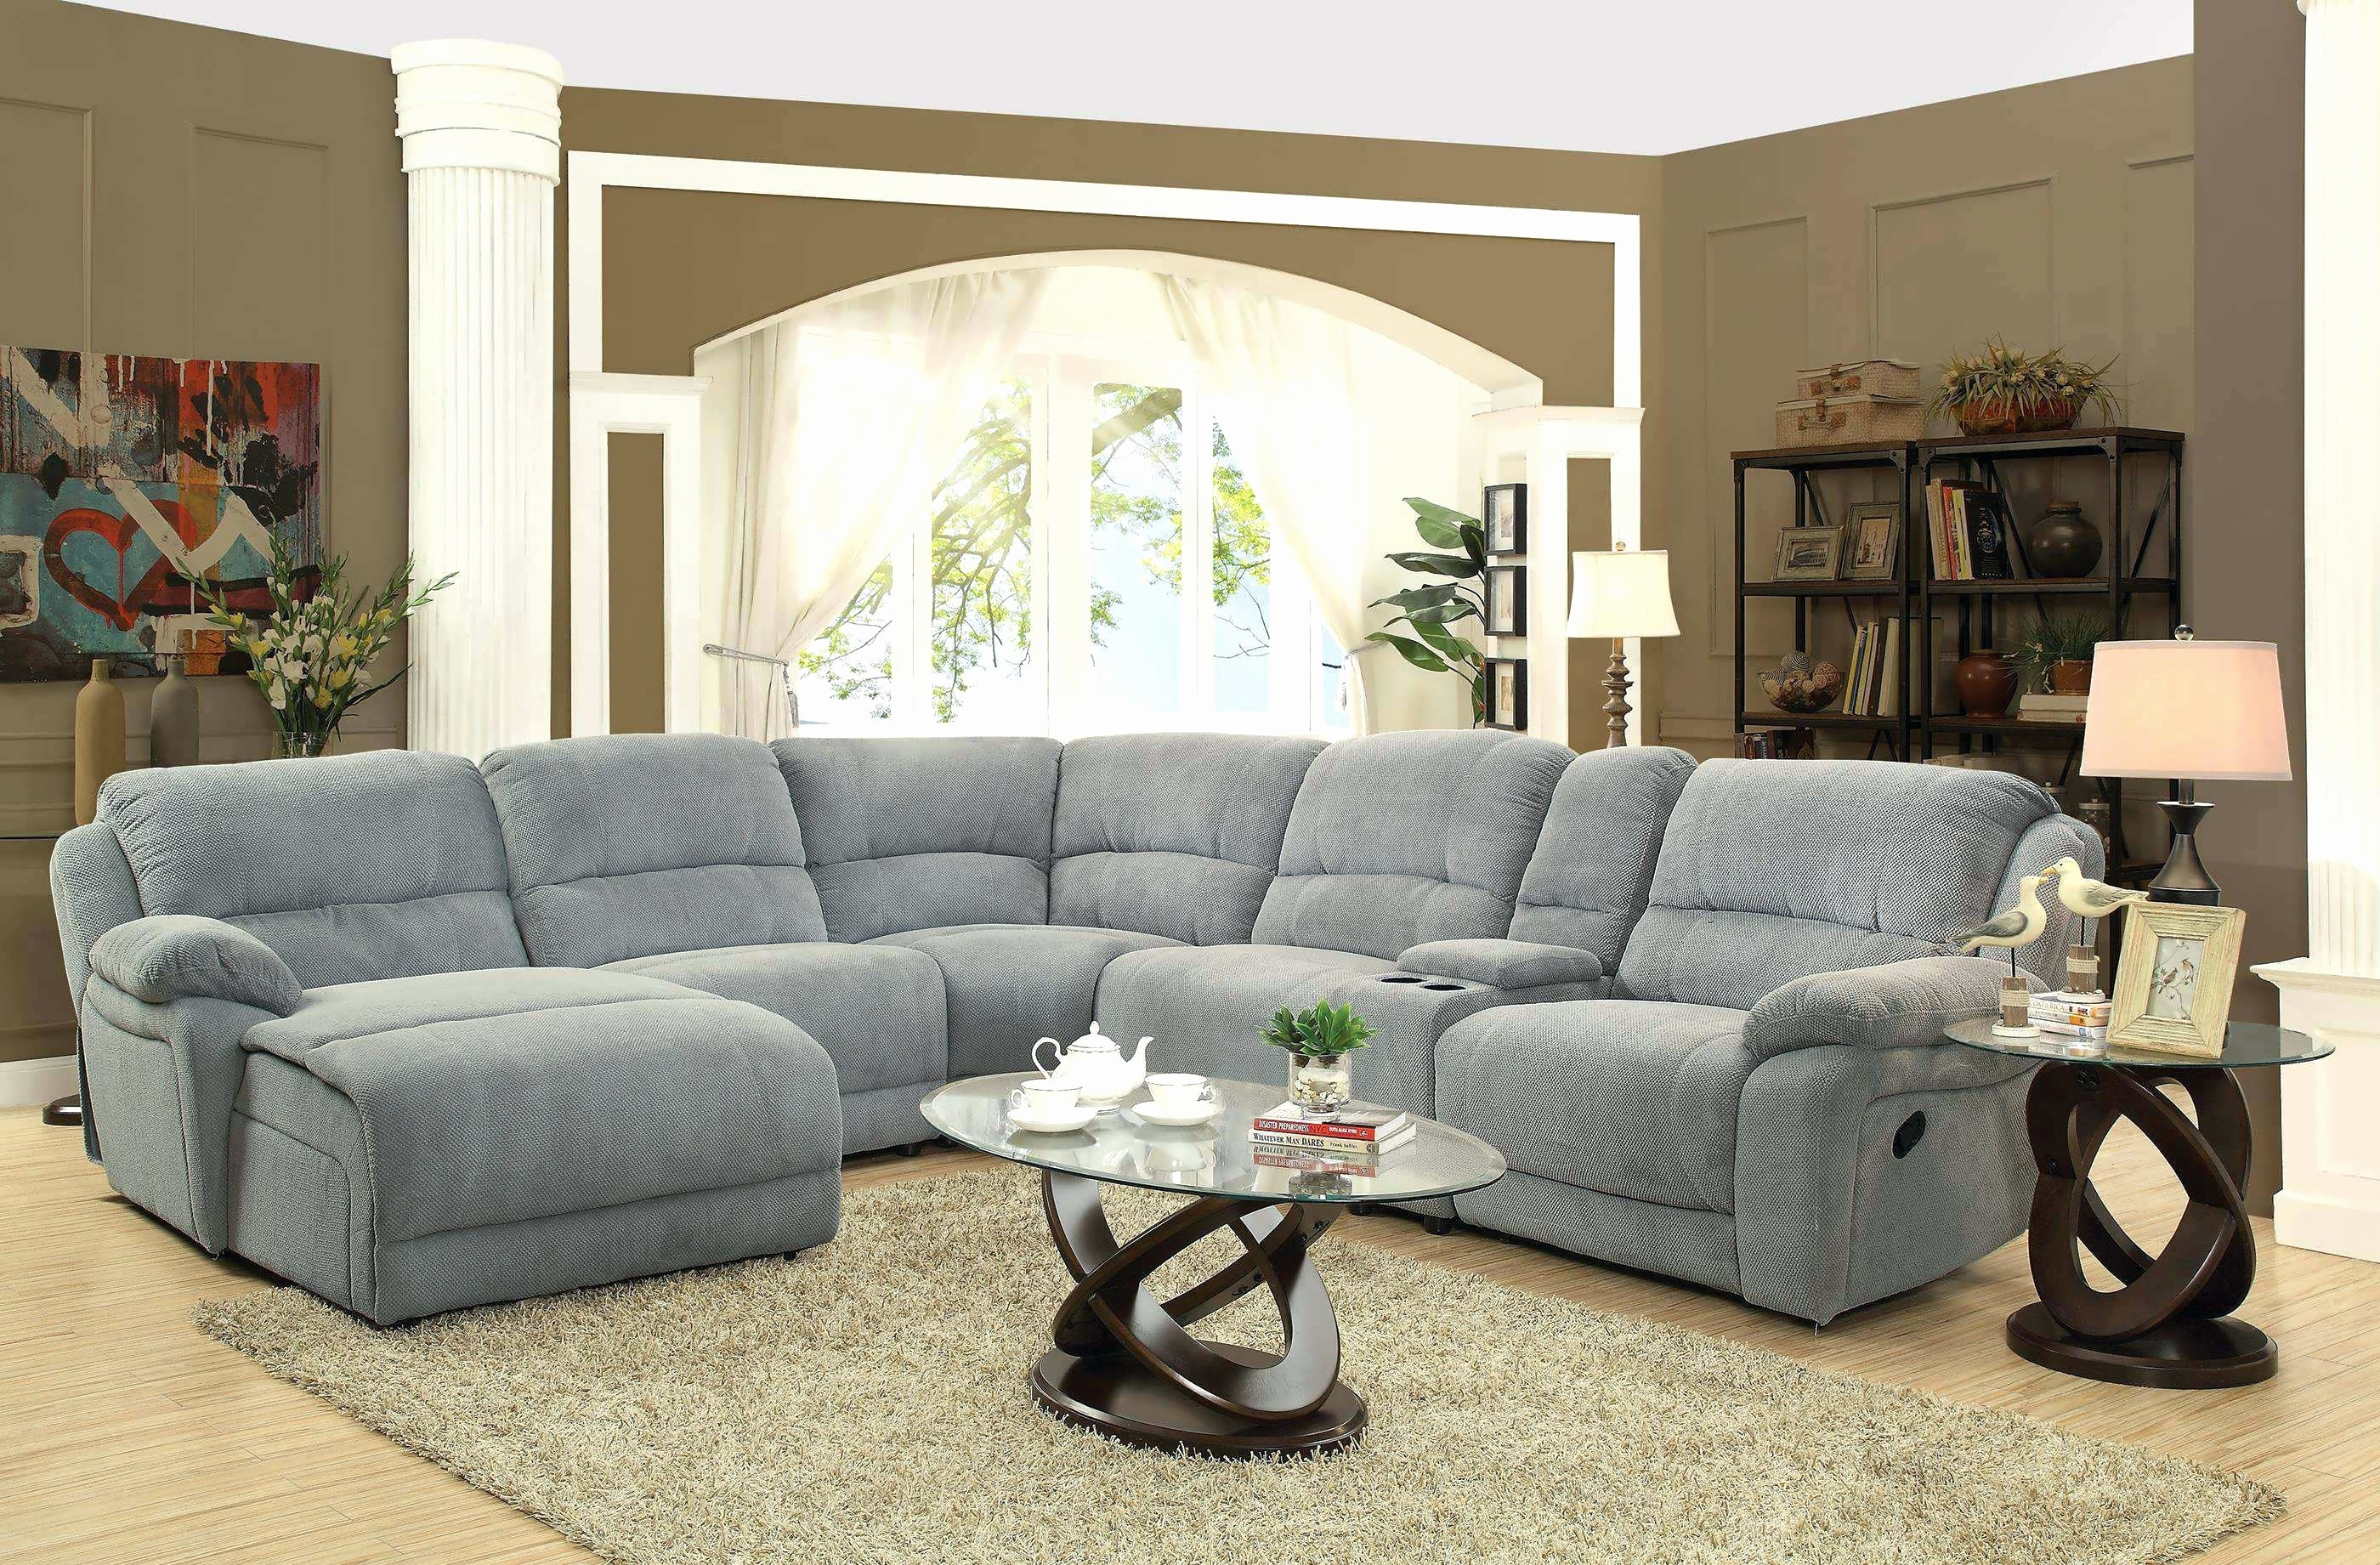 Awesome U Shaped Couch With Recliner 2018 – Couches And Sofas Ideas regarding Reclining U Shaped Sectionals (Image 2 of 15)